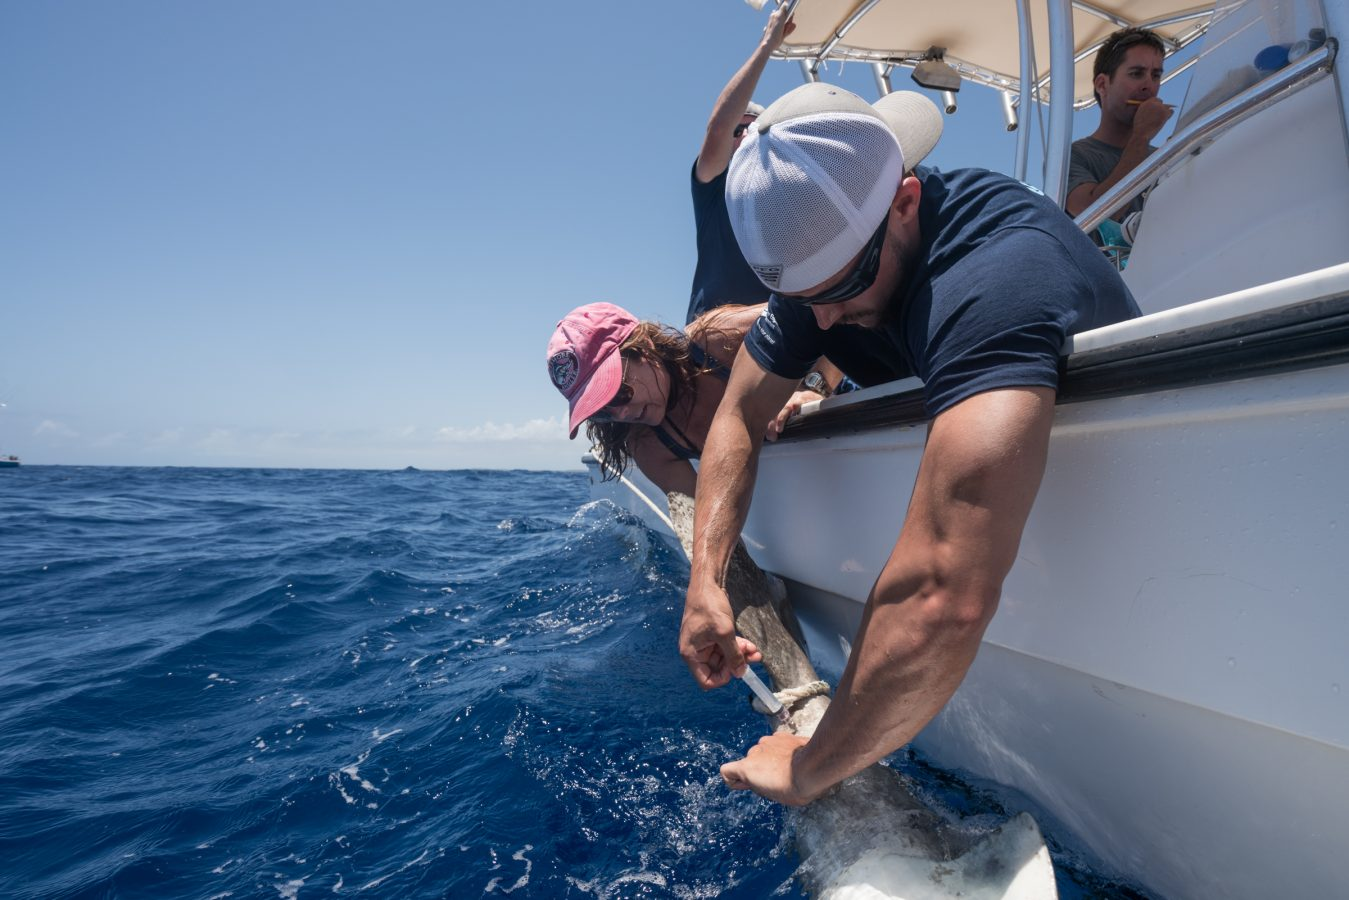 Ryan Knotek (University of Massachusetts Boston Ph.D. candidate) drawing blood from an oceanic whitetip shark. Photo courtesy: Andy Mann.